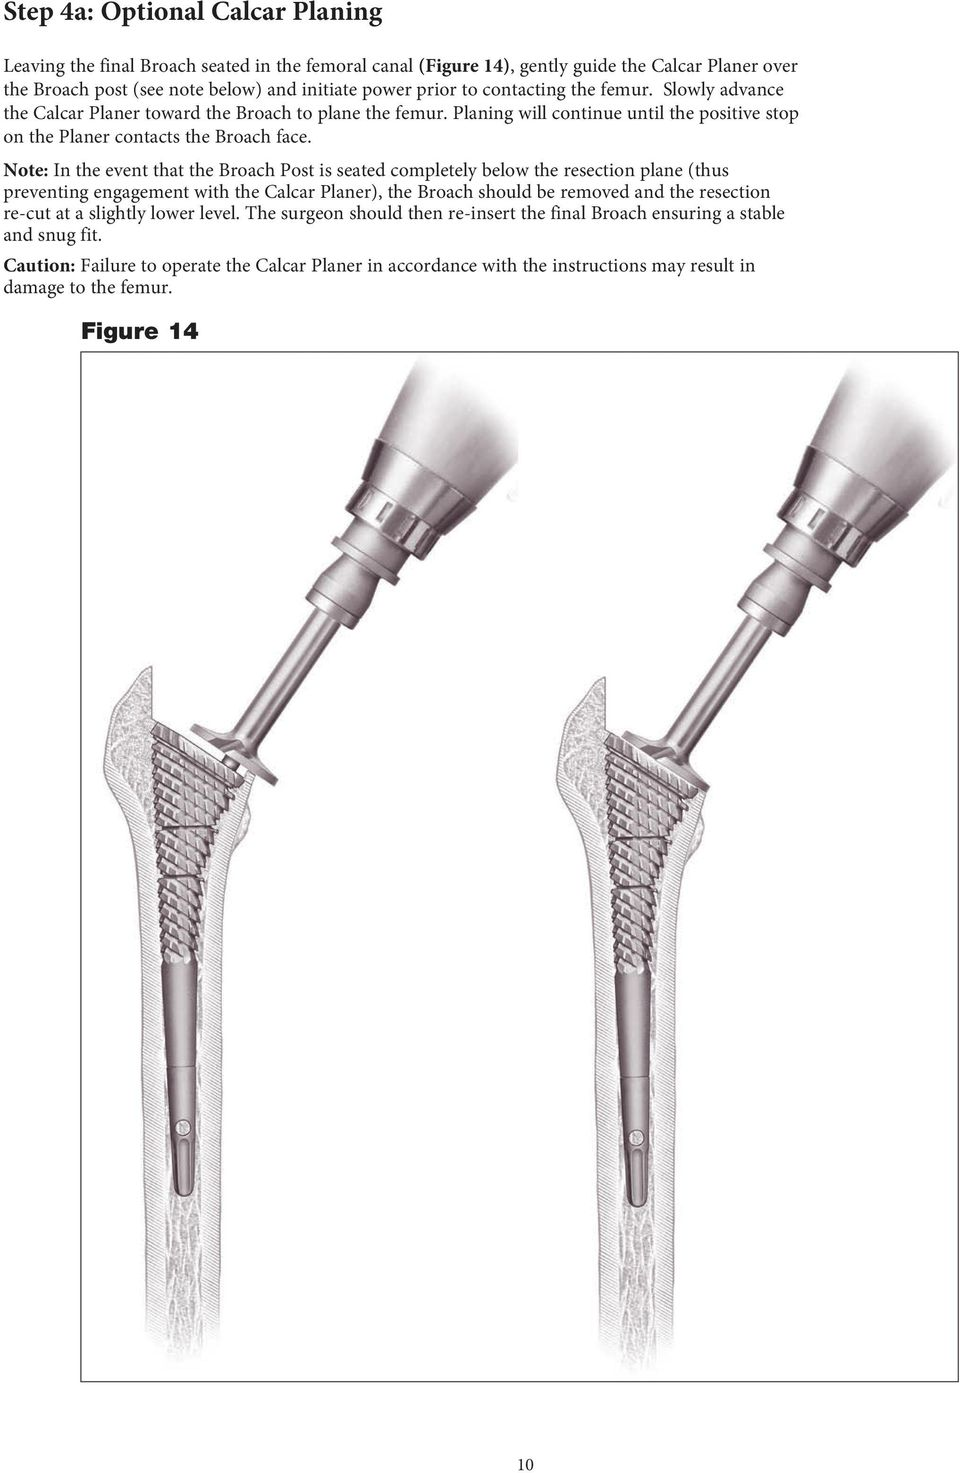 Note: In the event that the Broach Post is seated completely below the resection plane (thus preventing engagement with the Calcar Planer), the Broach should be removed and the resection re-cut at a